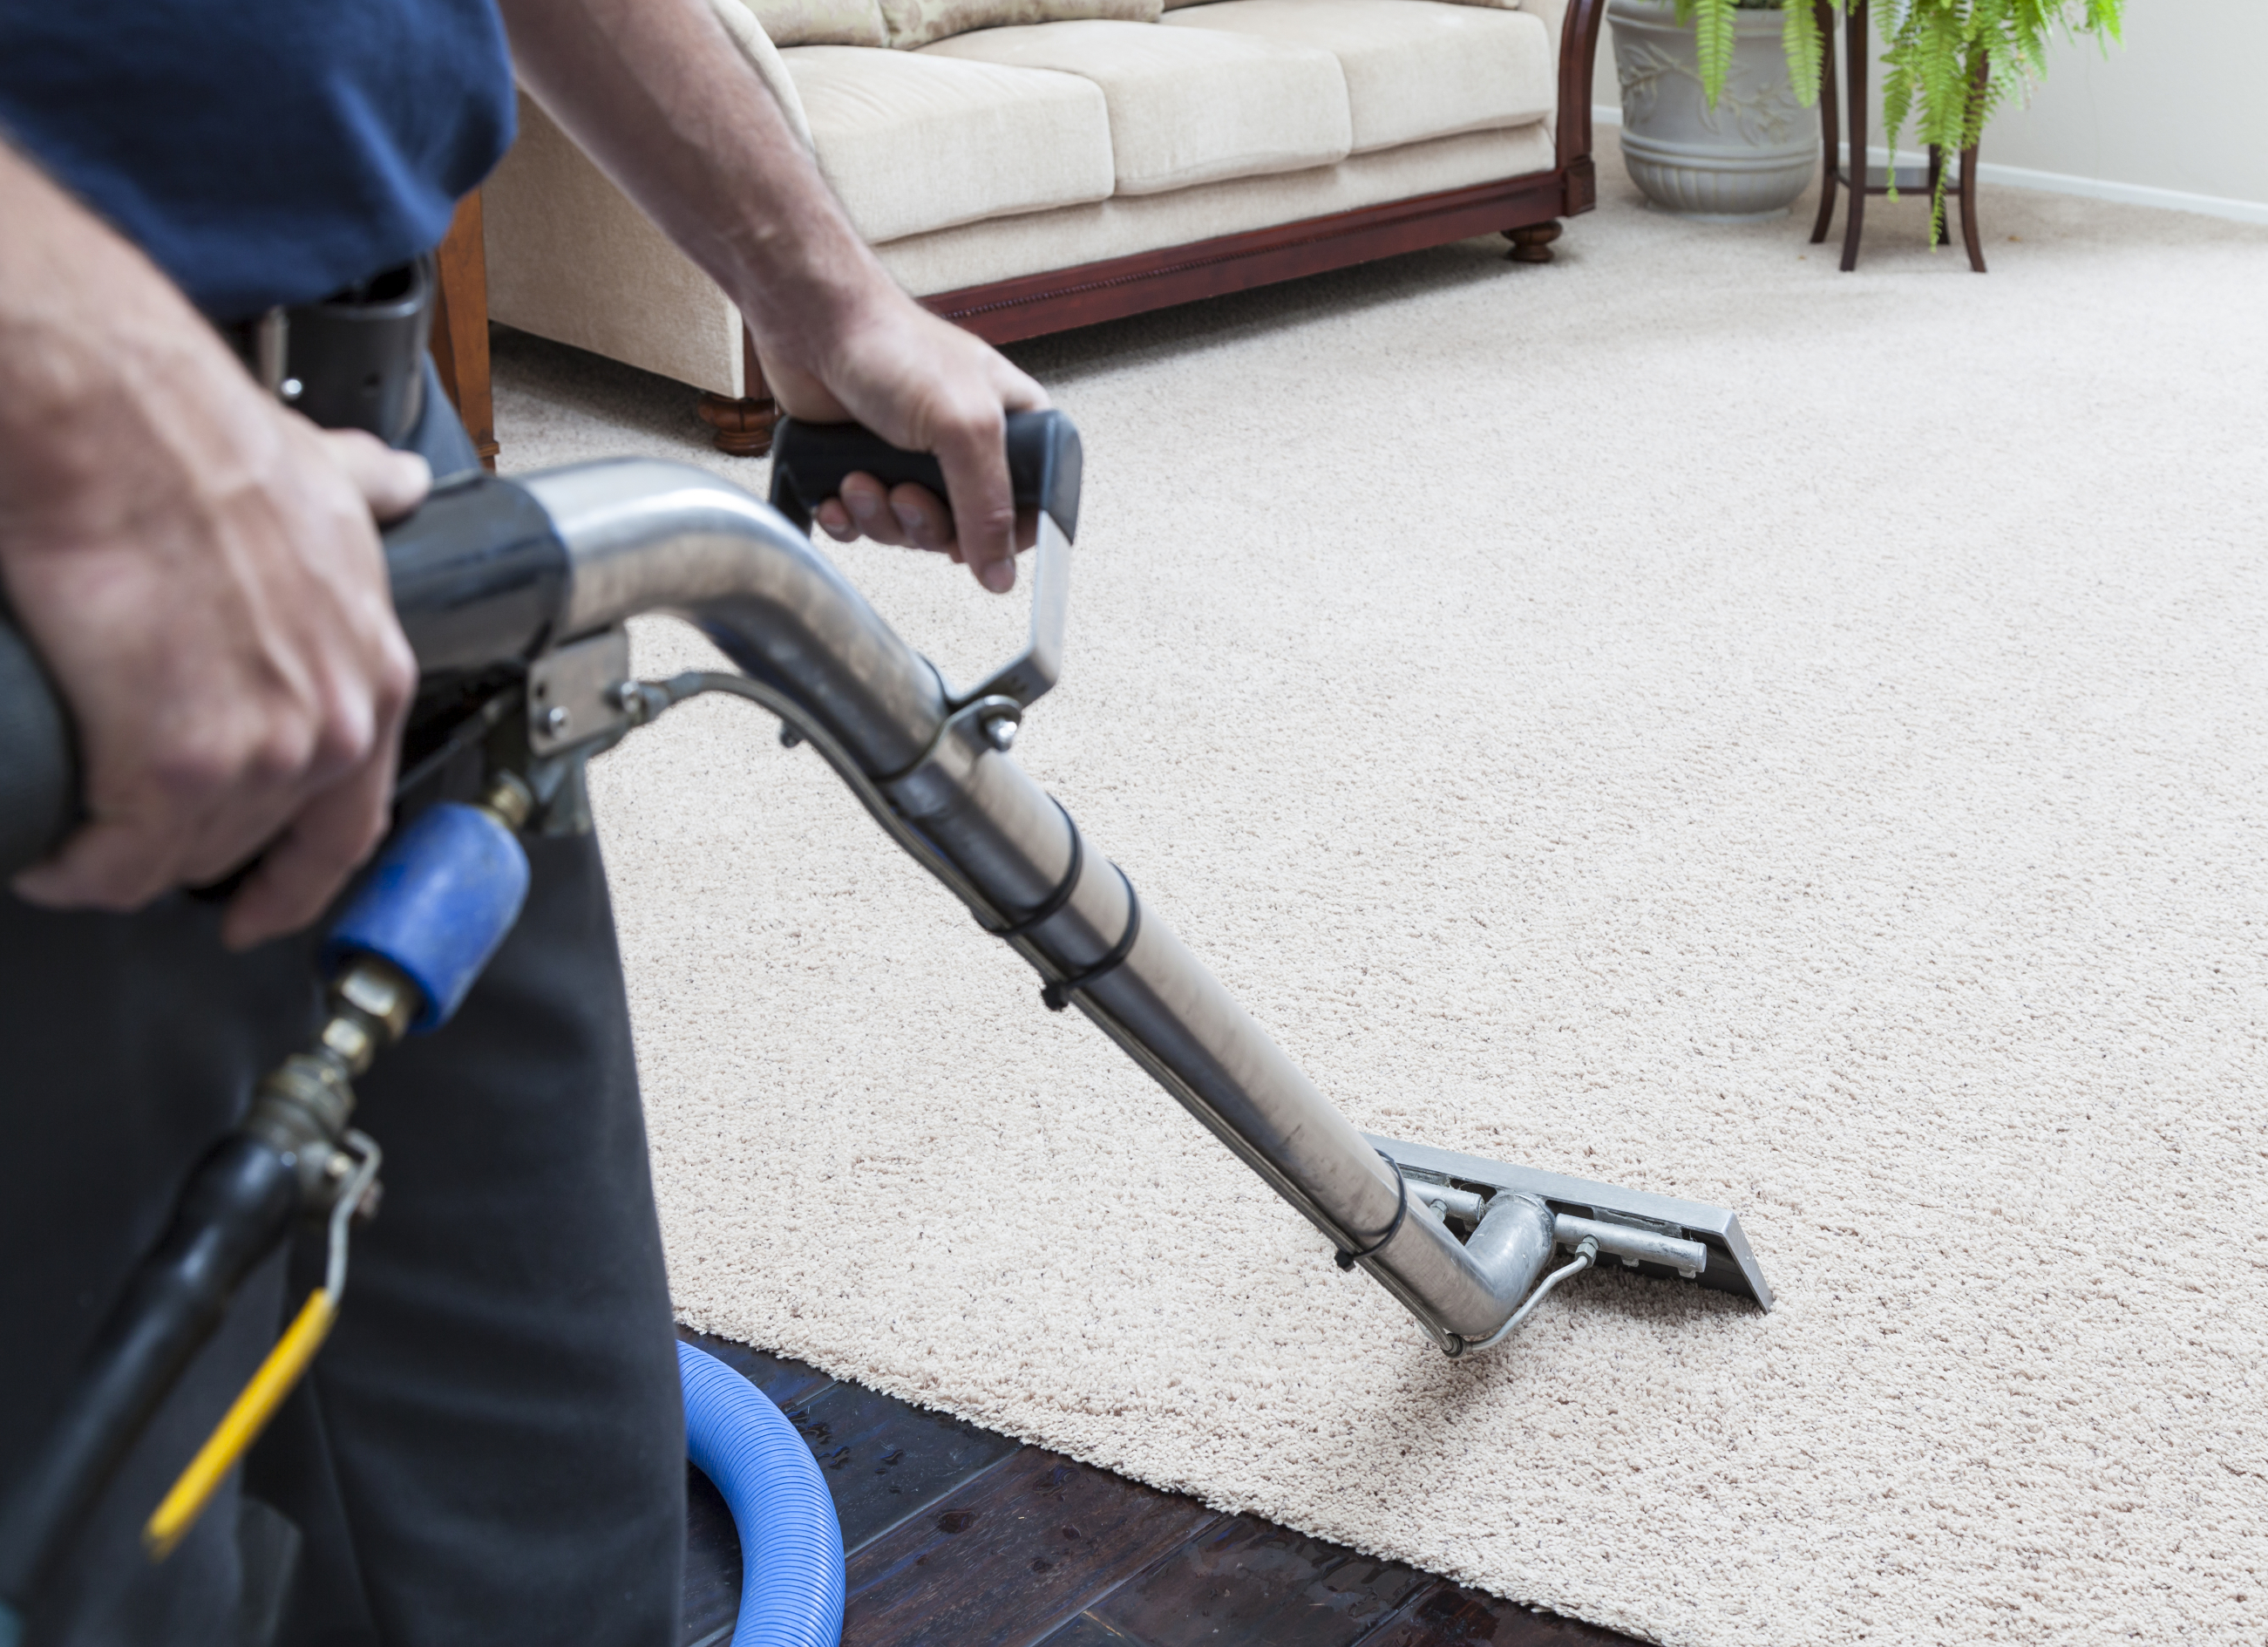 Carpet Cleaning Shampooing Service Nyc American